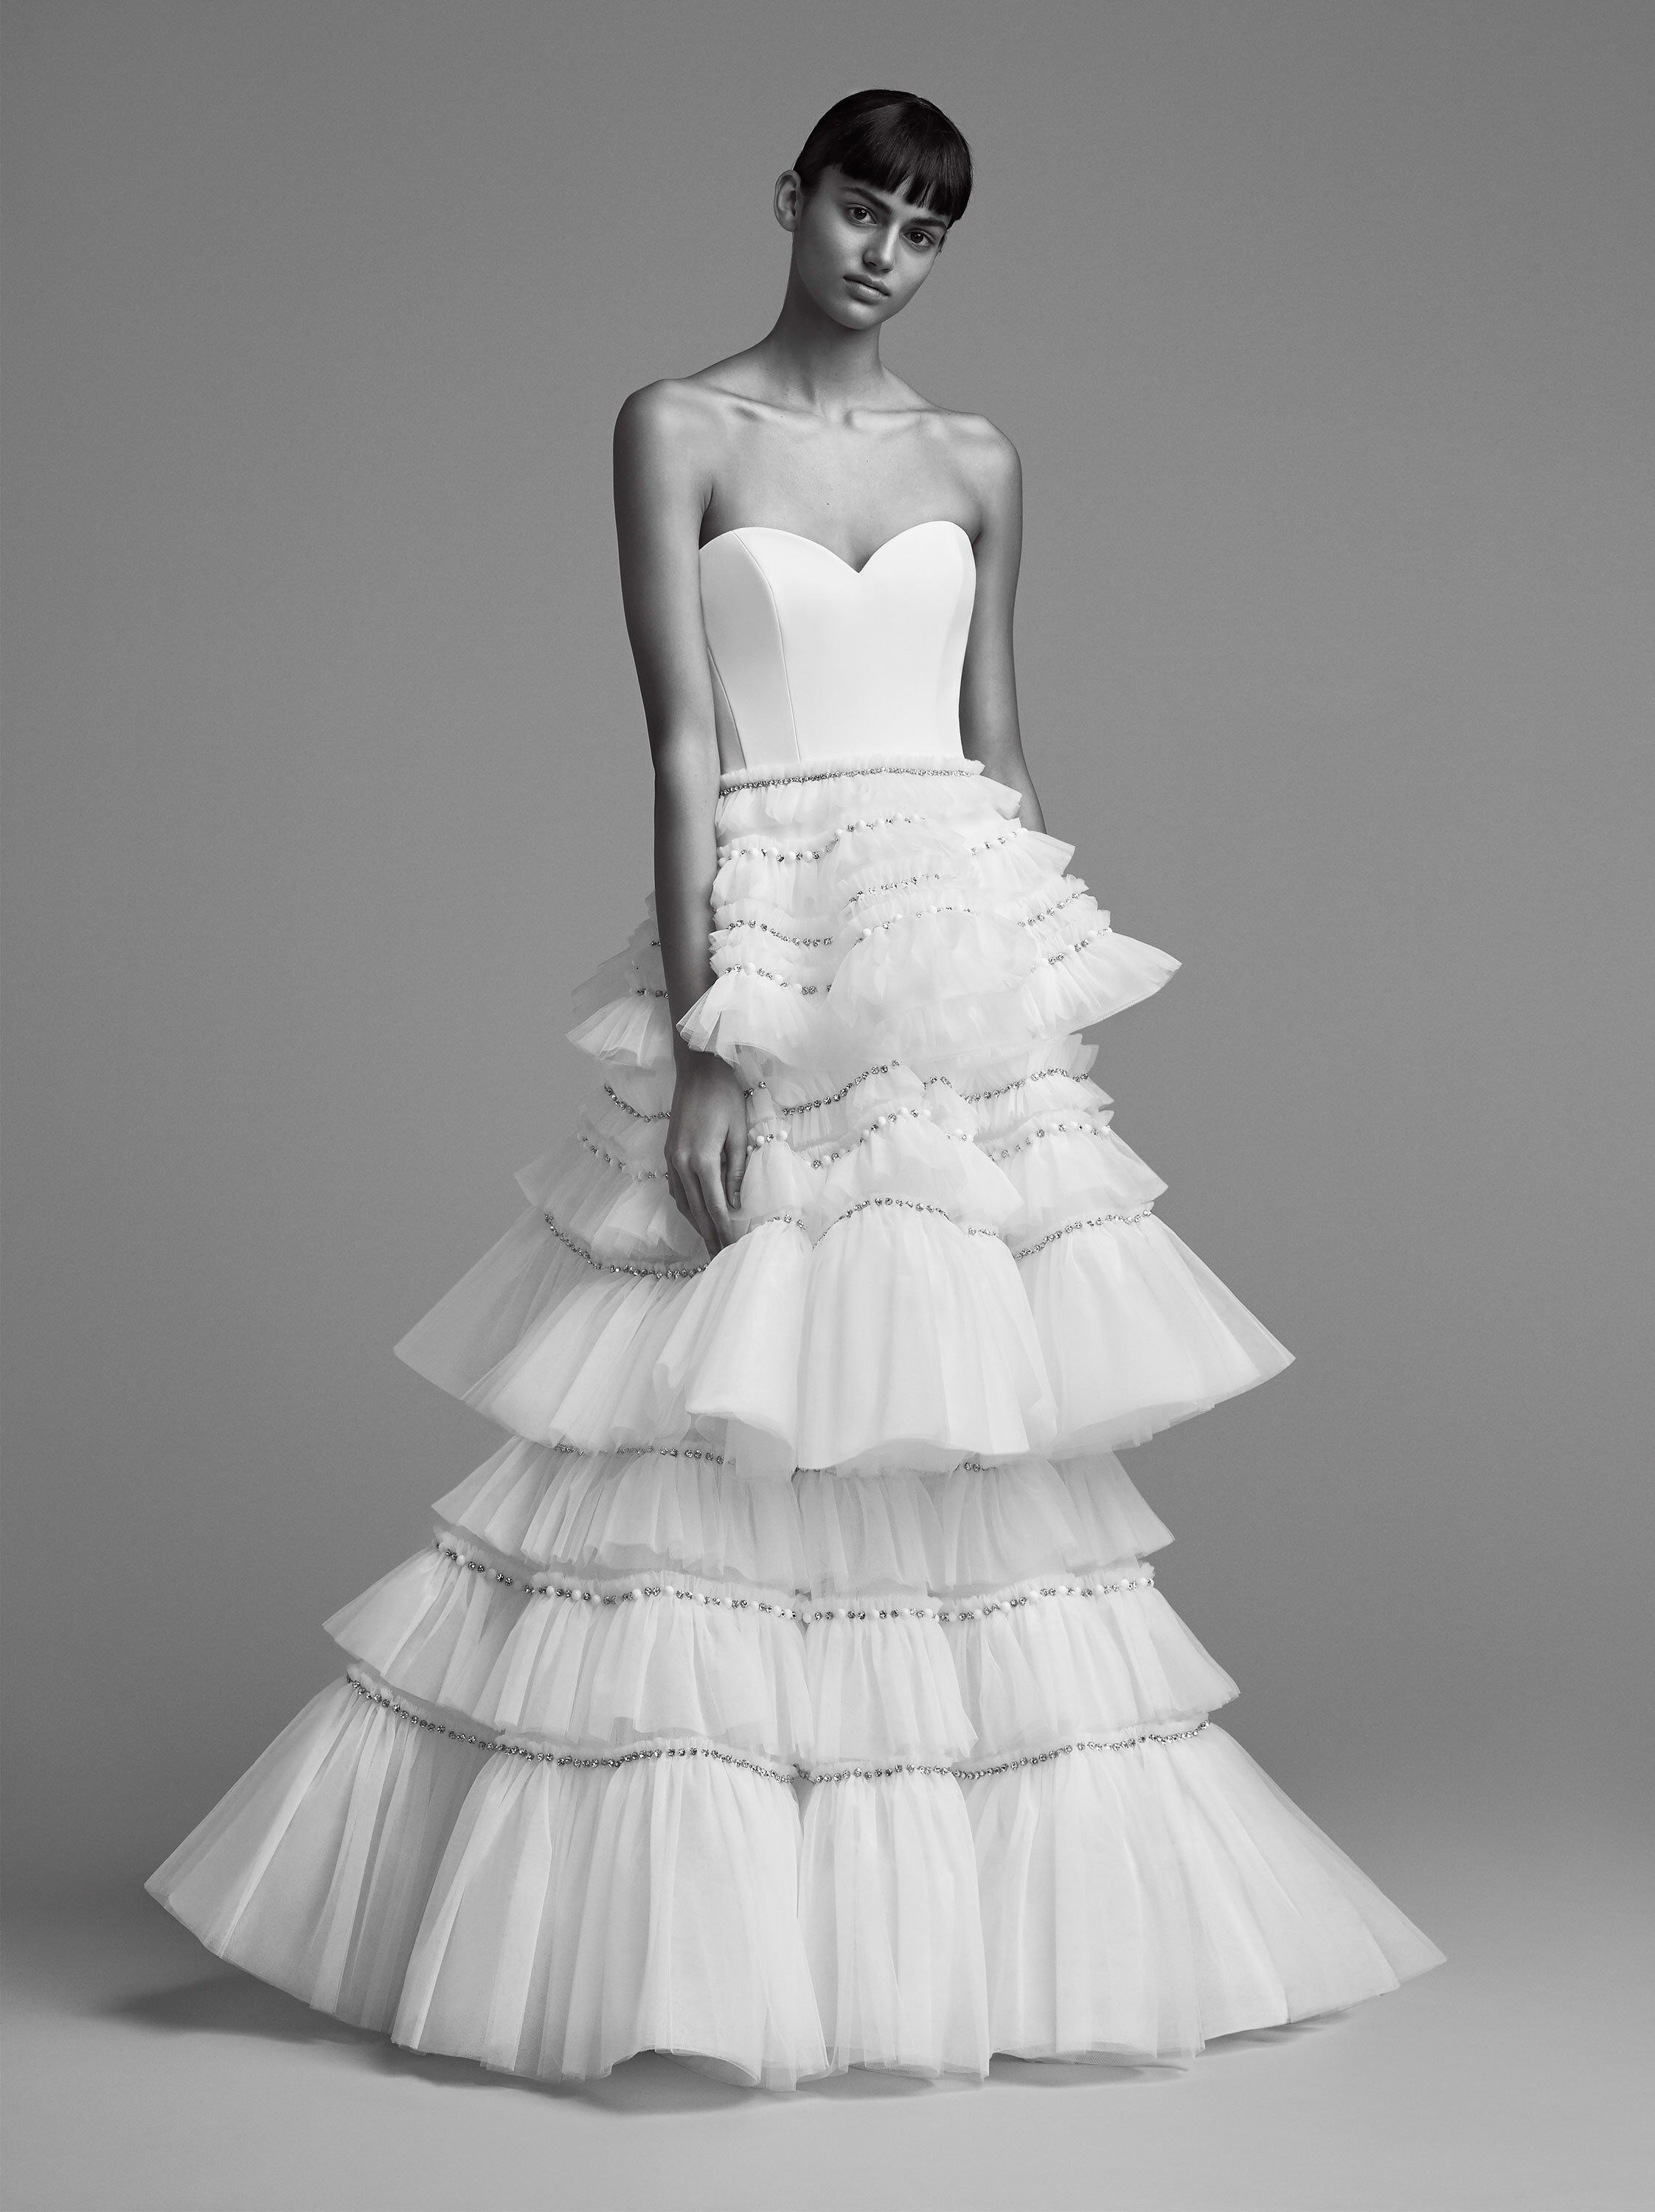 Viktor u rolf bridal fall fashion show collection here comes